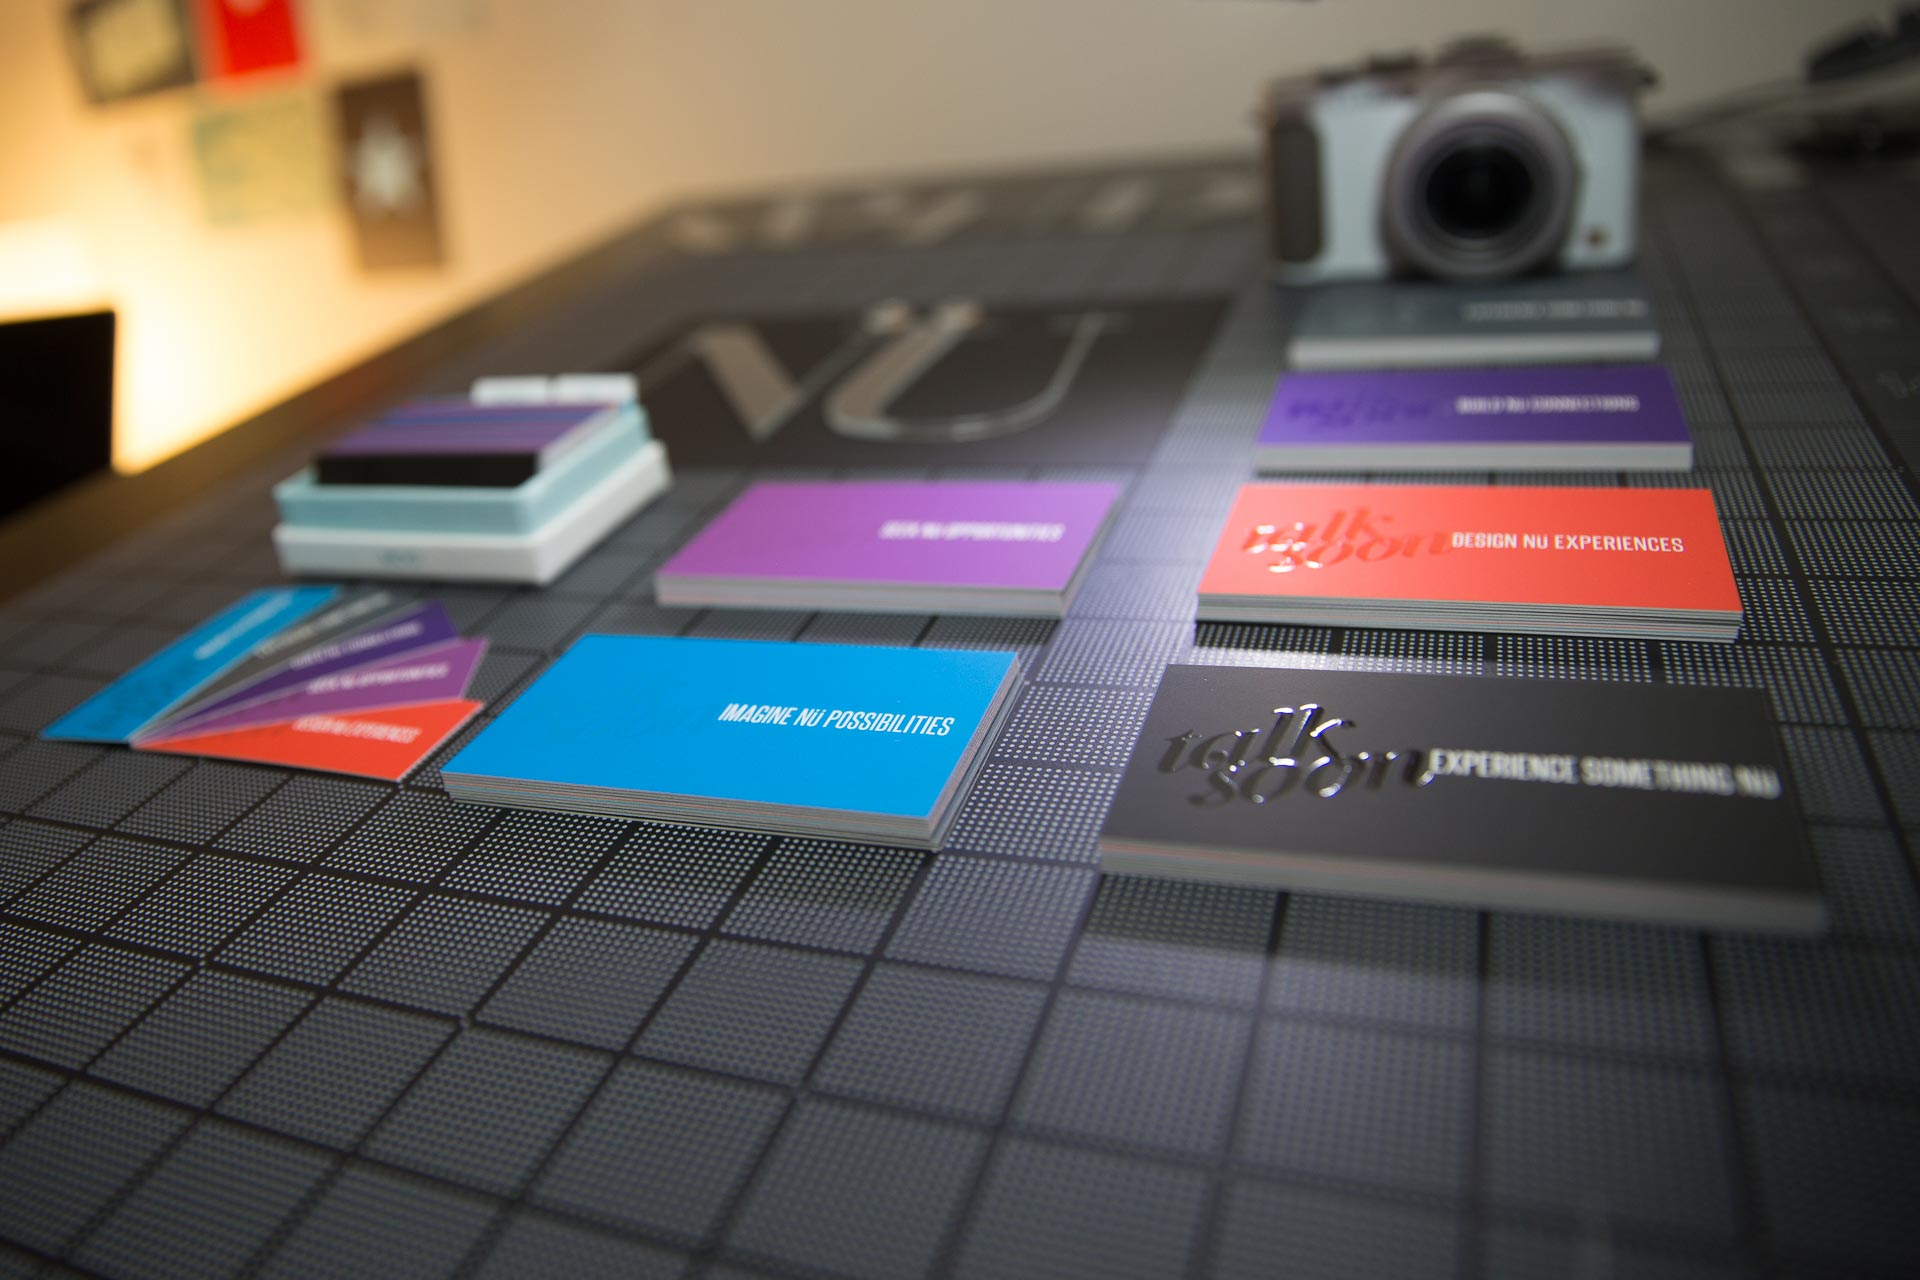 NÜ in acrylic letters, a white camera, and purple, blue, and red business cards on a black gridded surface